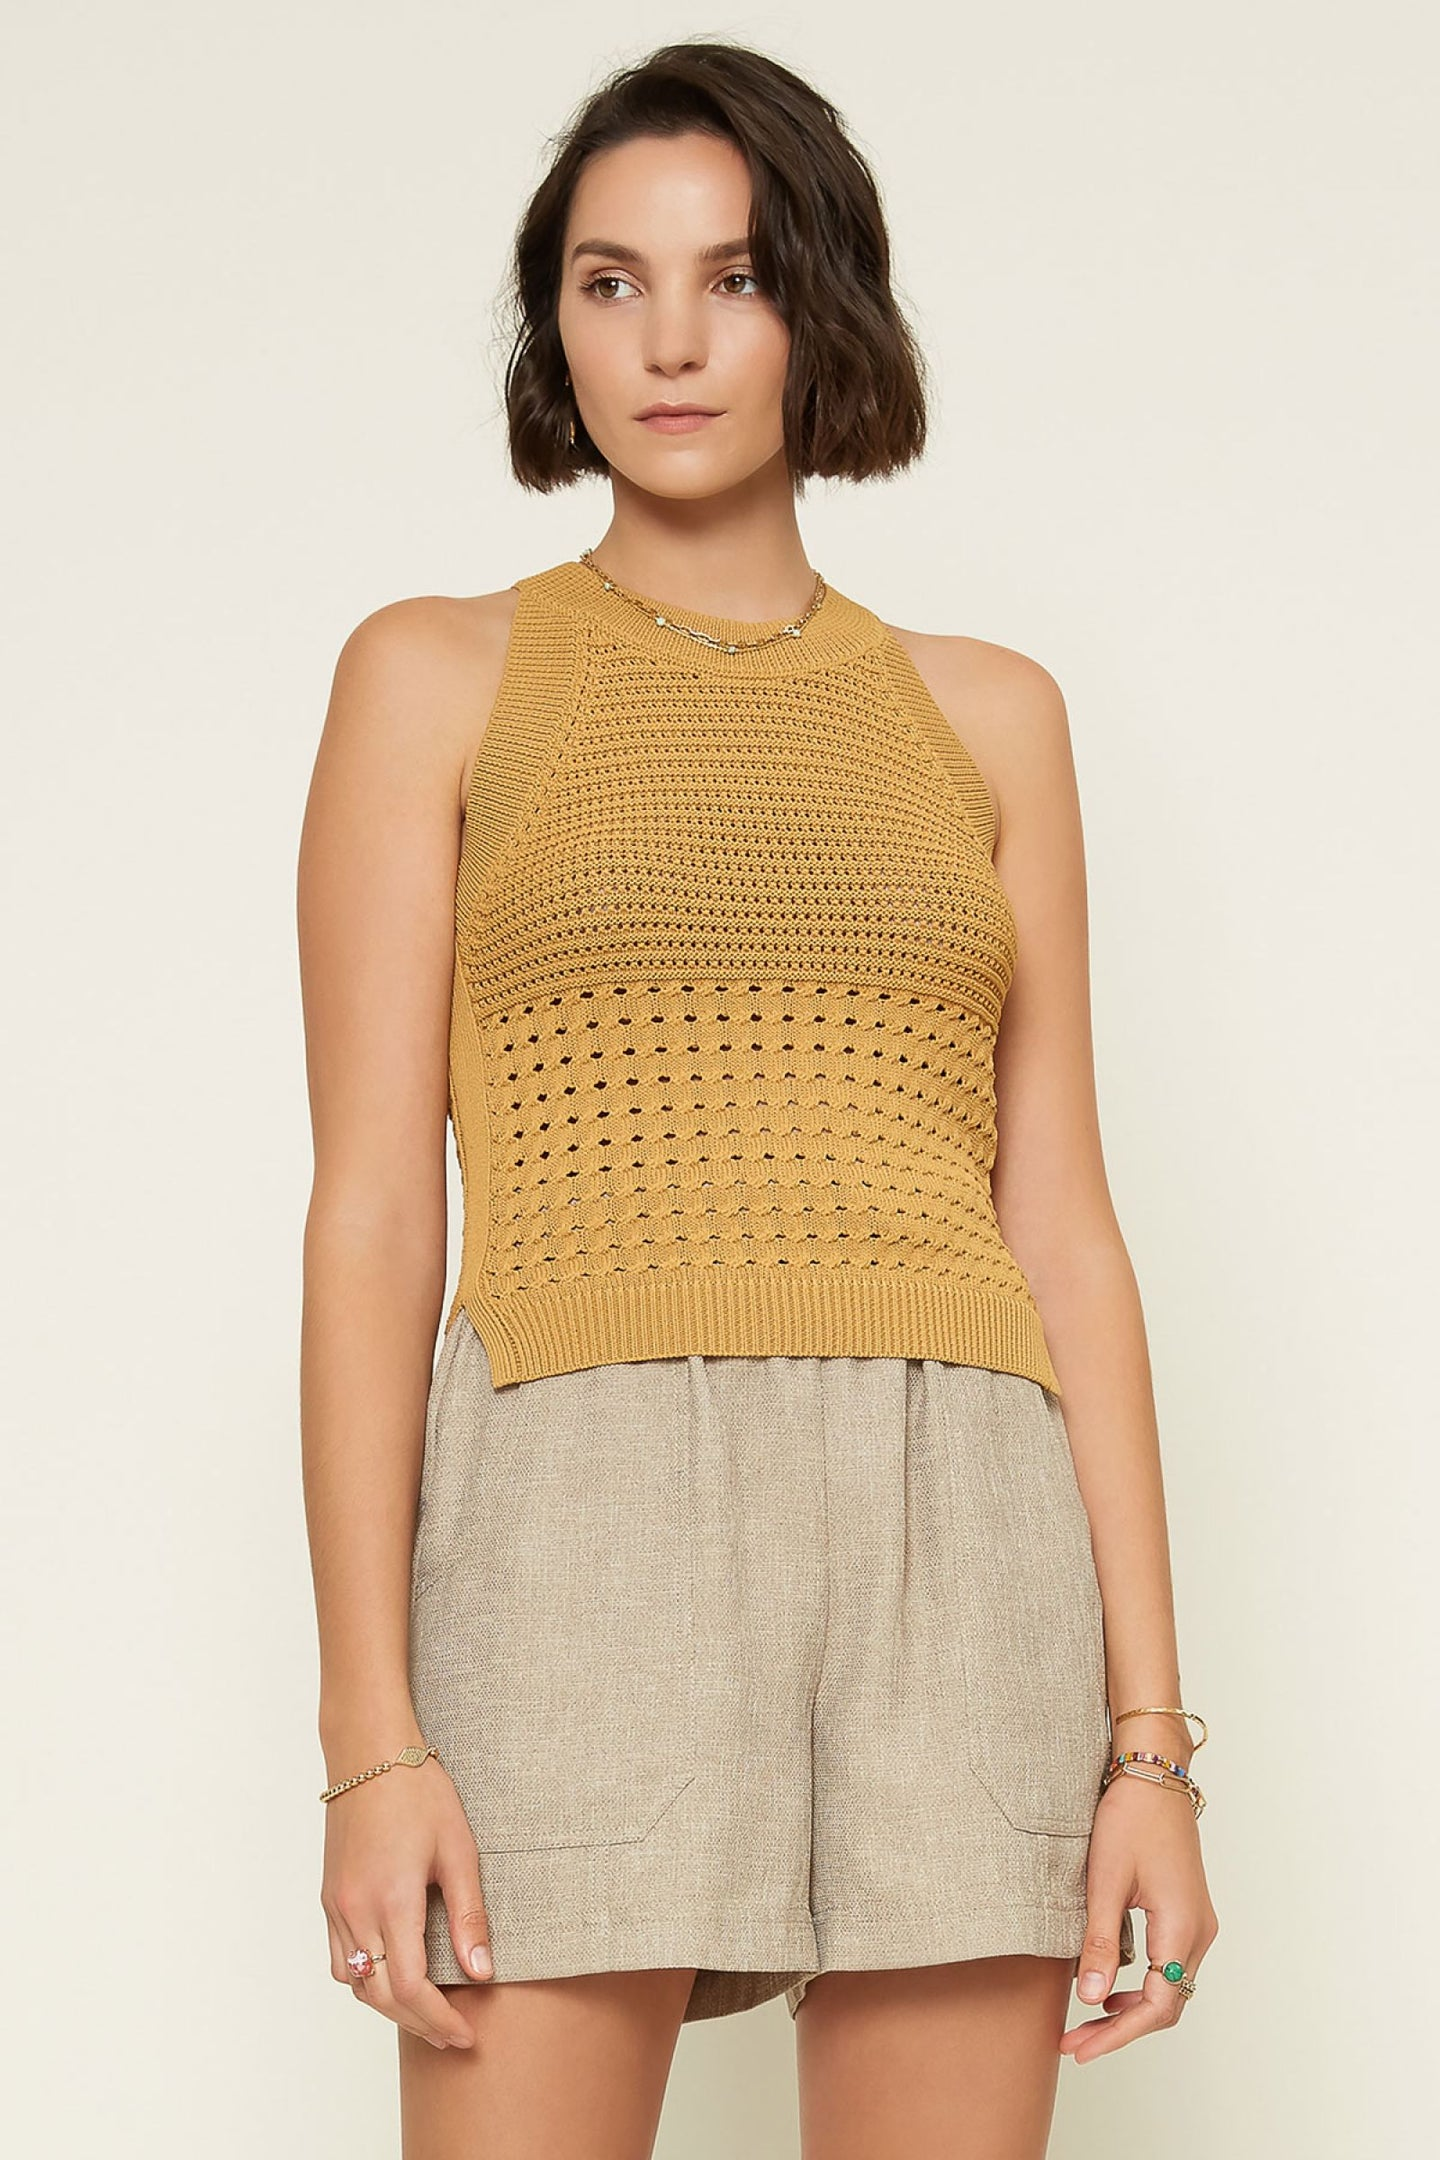 Butterscotch Halter Sweater Top